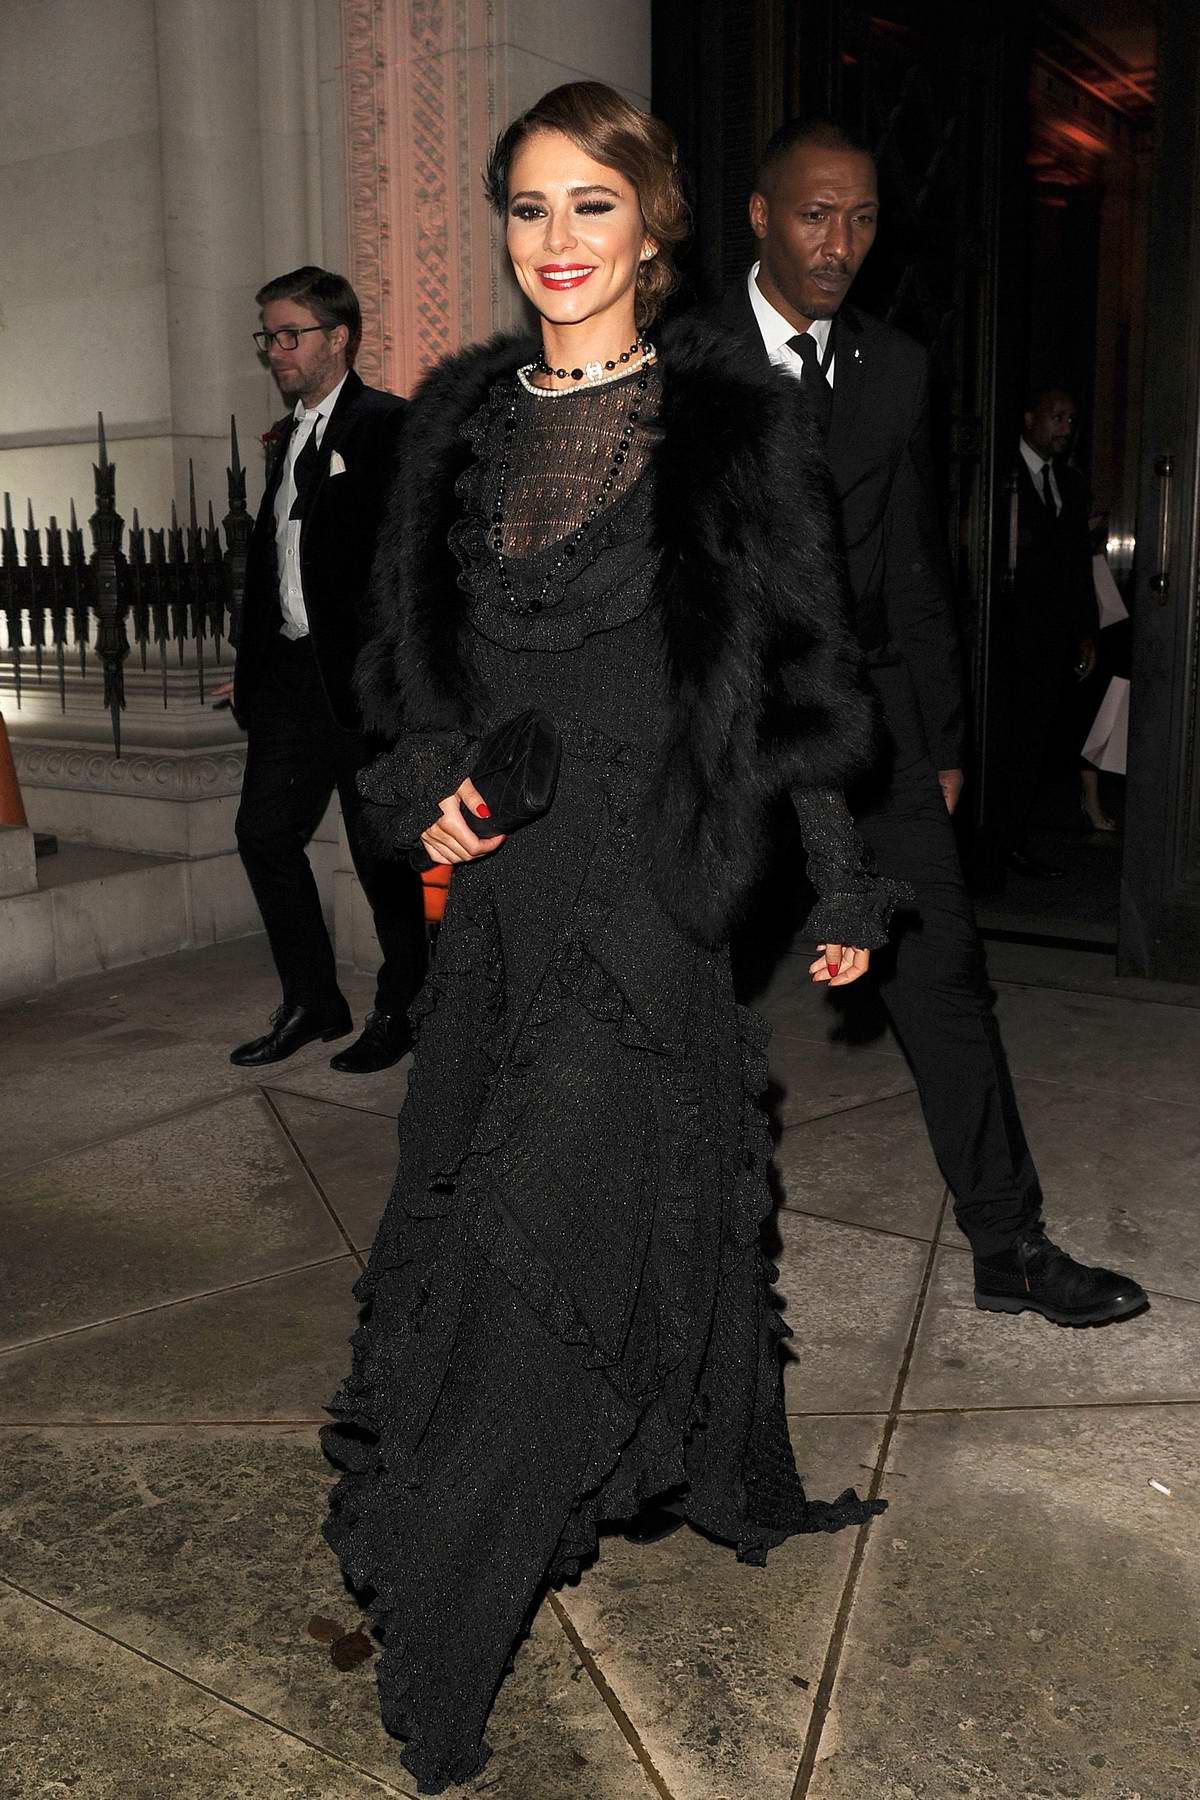 Cheryl Tweedy looks great in a vintage black lace dress while leaving the Freemasons Hall in Covent Garden, London, UK